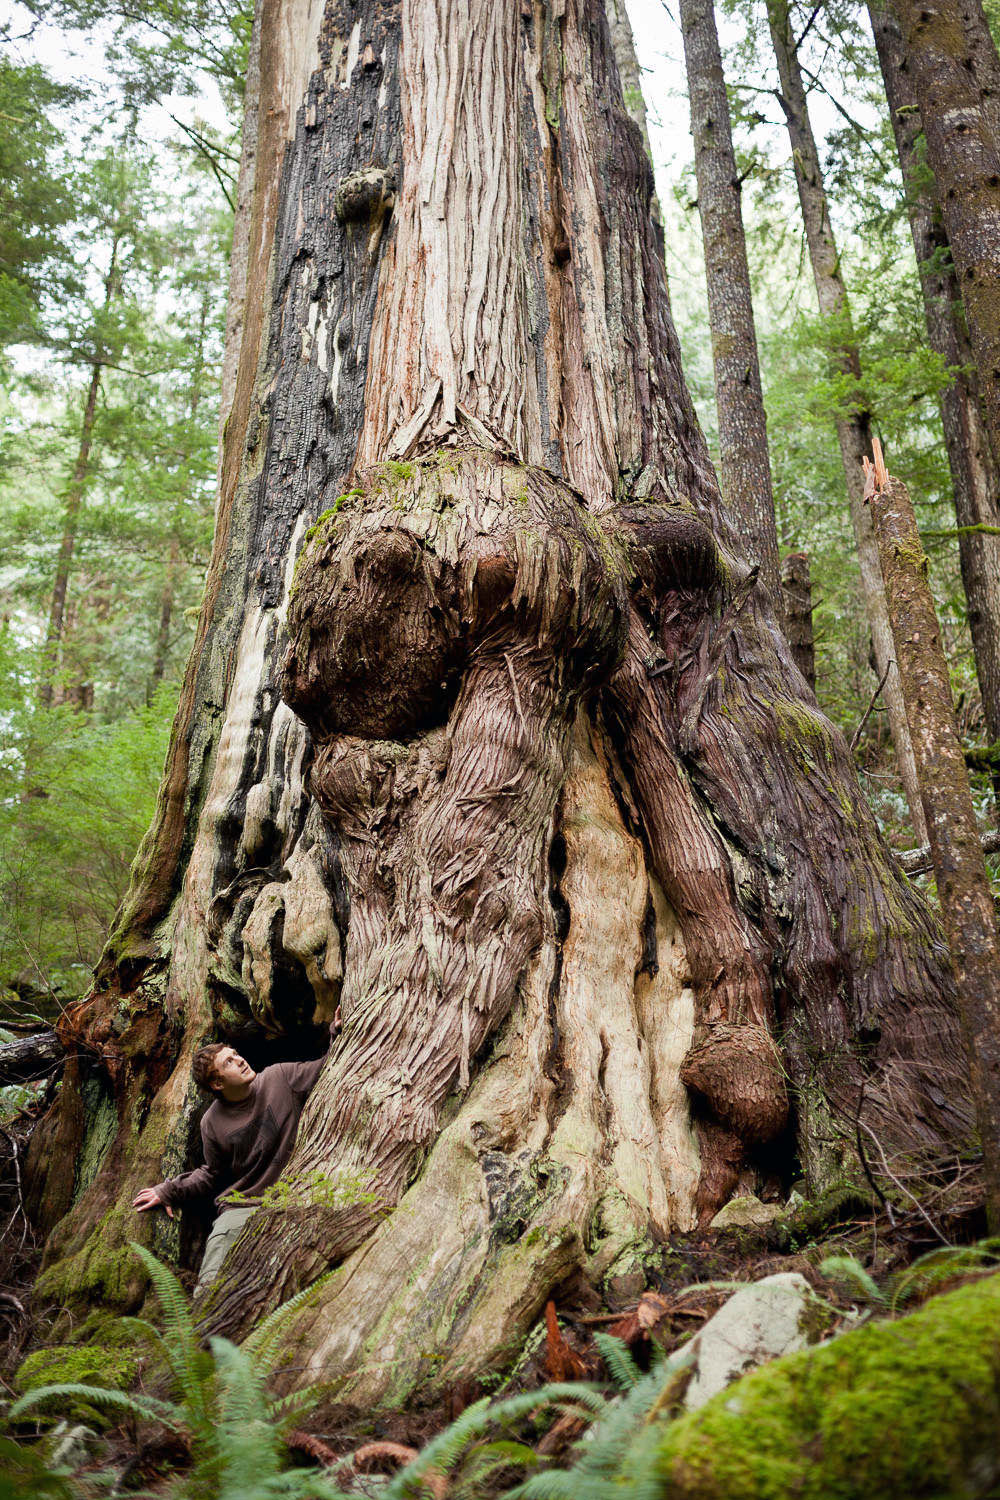 You just never know what you might find when exploring. I came across this giant burly western redcedar tree while on a solo bushwhack in the Gordon River Valley outside of Port Renfrew on Vancouver Island in 2012.